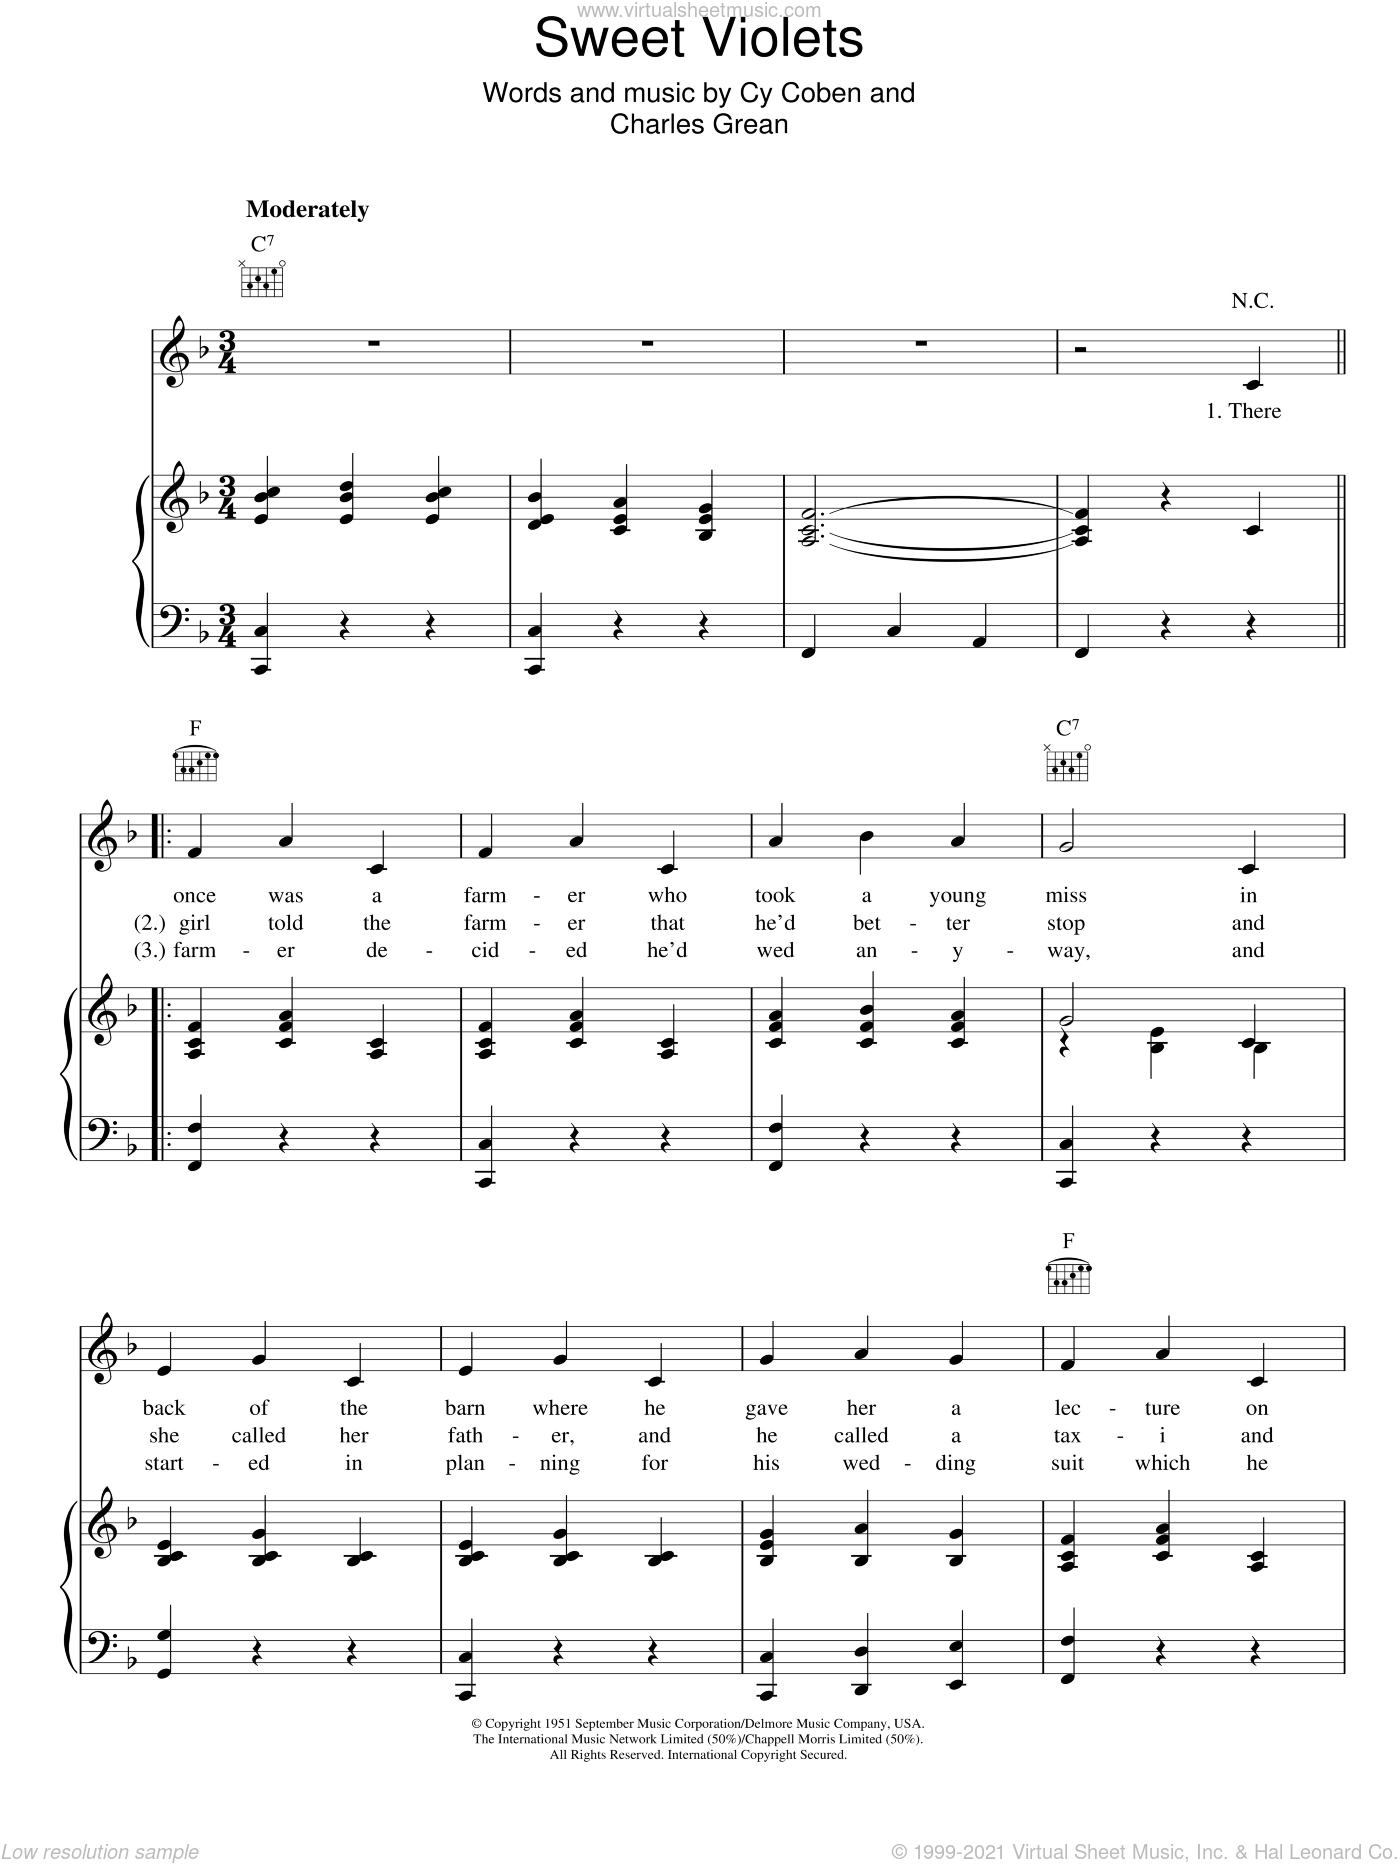 Sweet Violets sheet music for voice, piano or guitar by Charles Grean